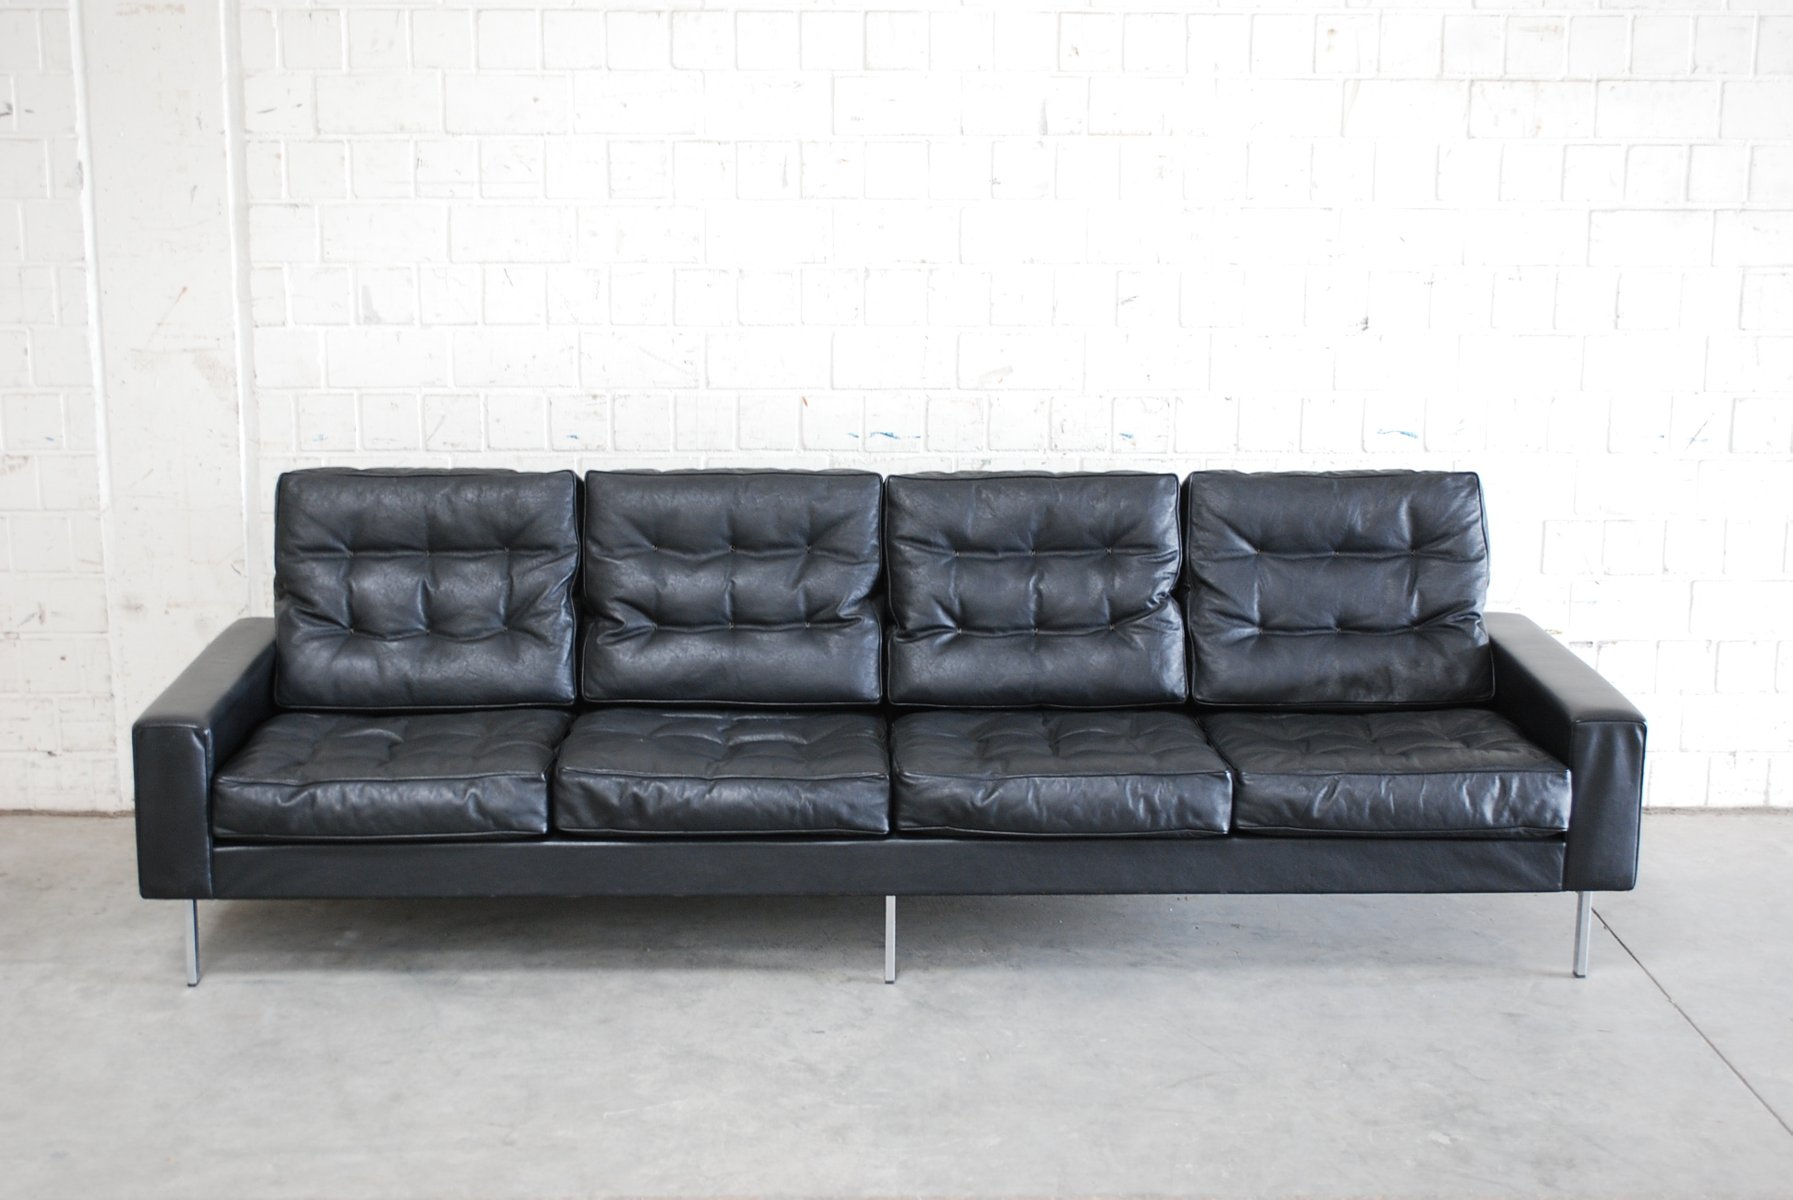 knislinge sofa idhult black review loft m s leather 4 seater 1700 jelly by vibieffe